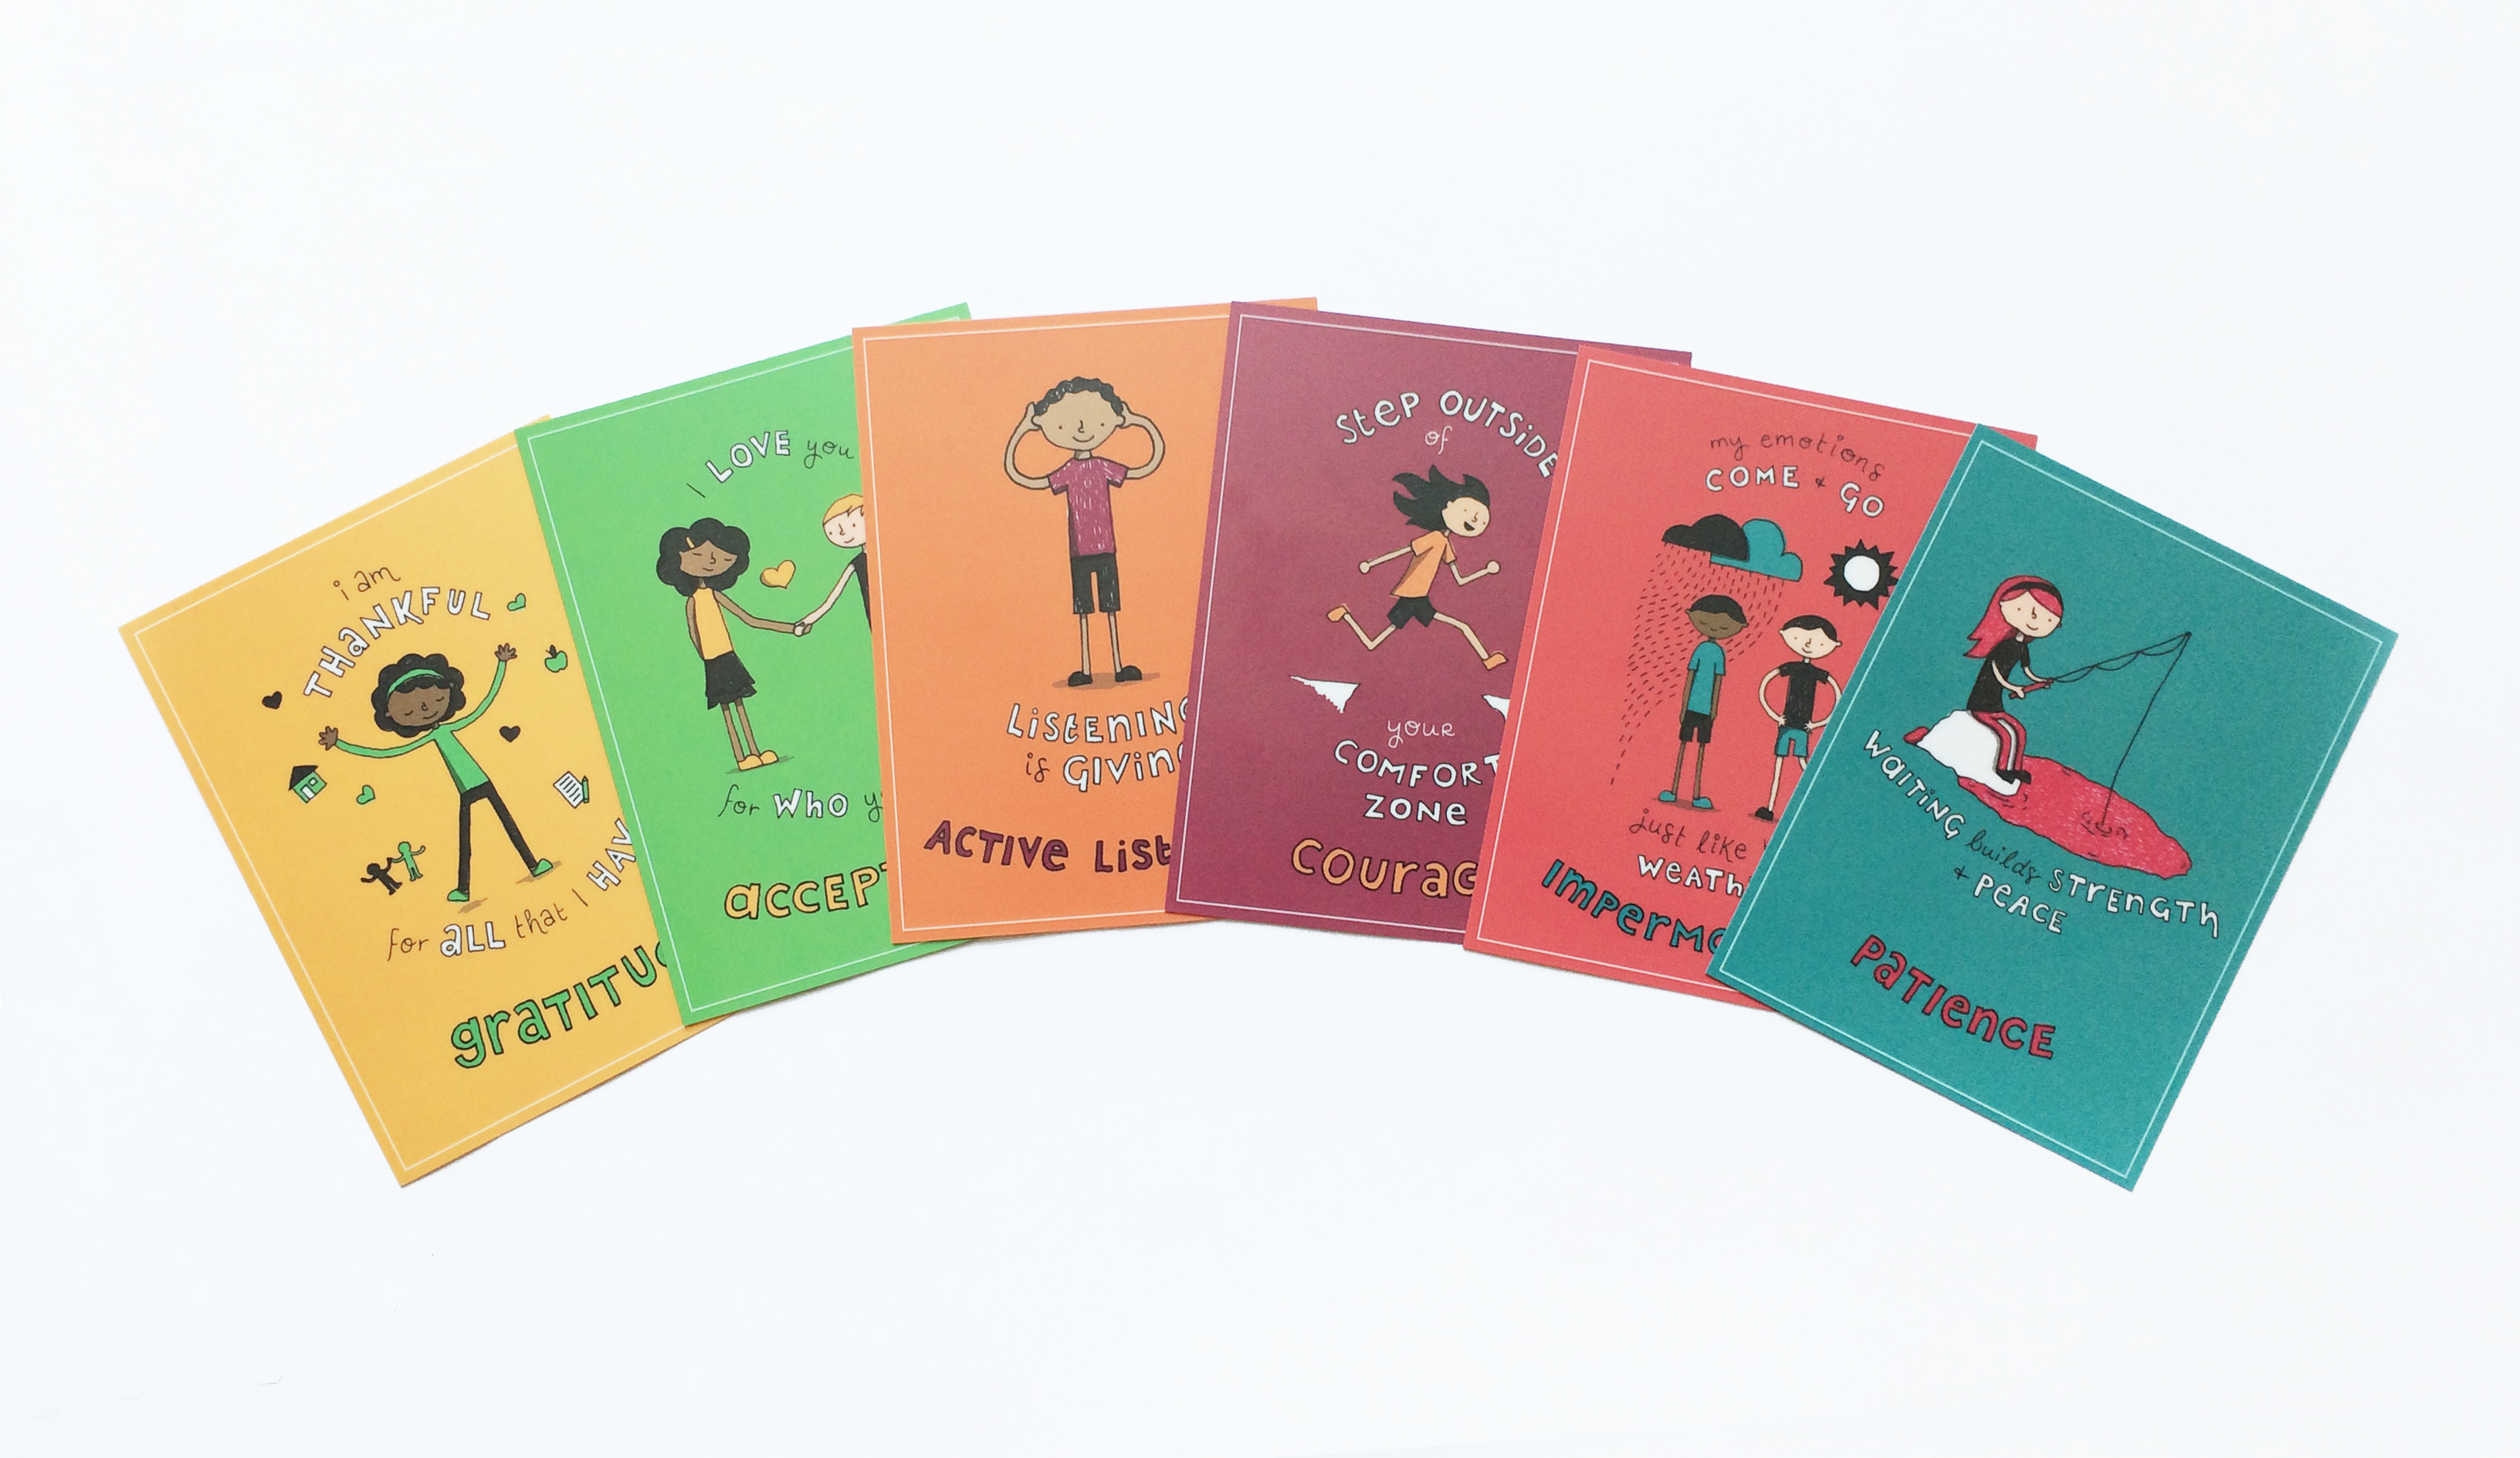 Mindful Actiivity Cards